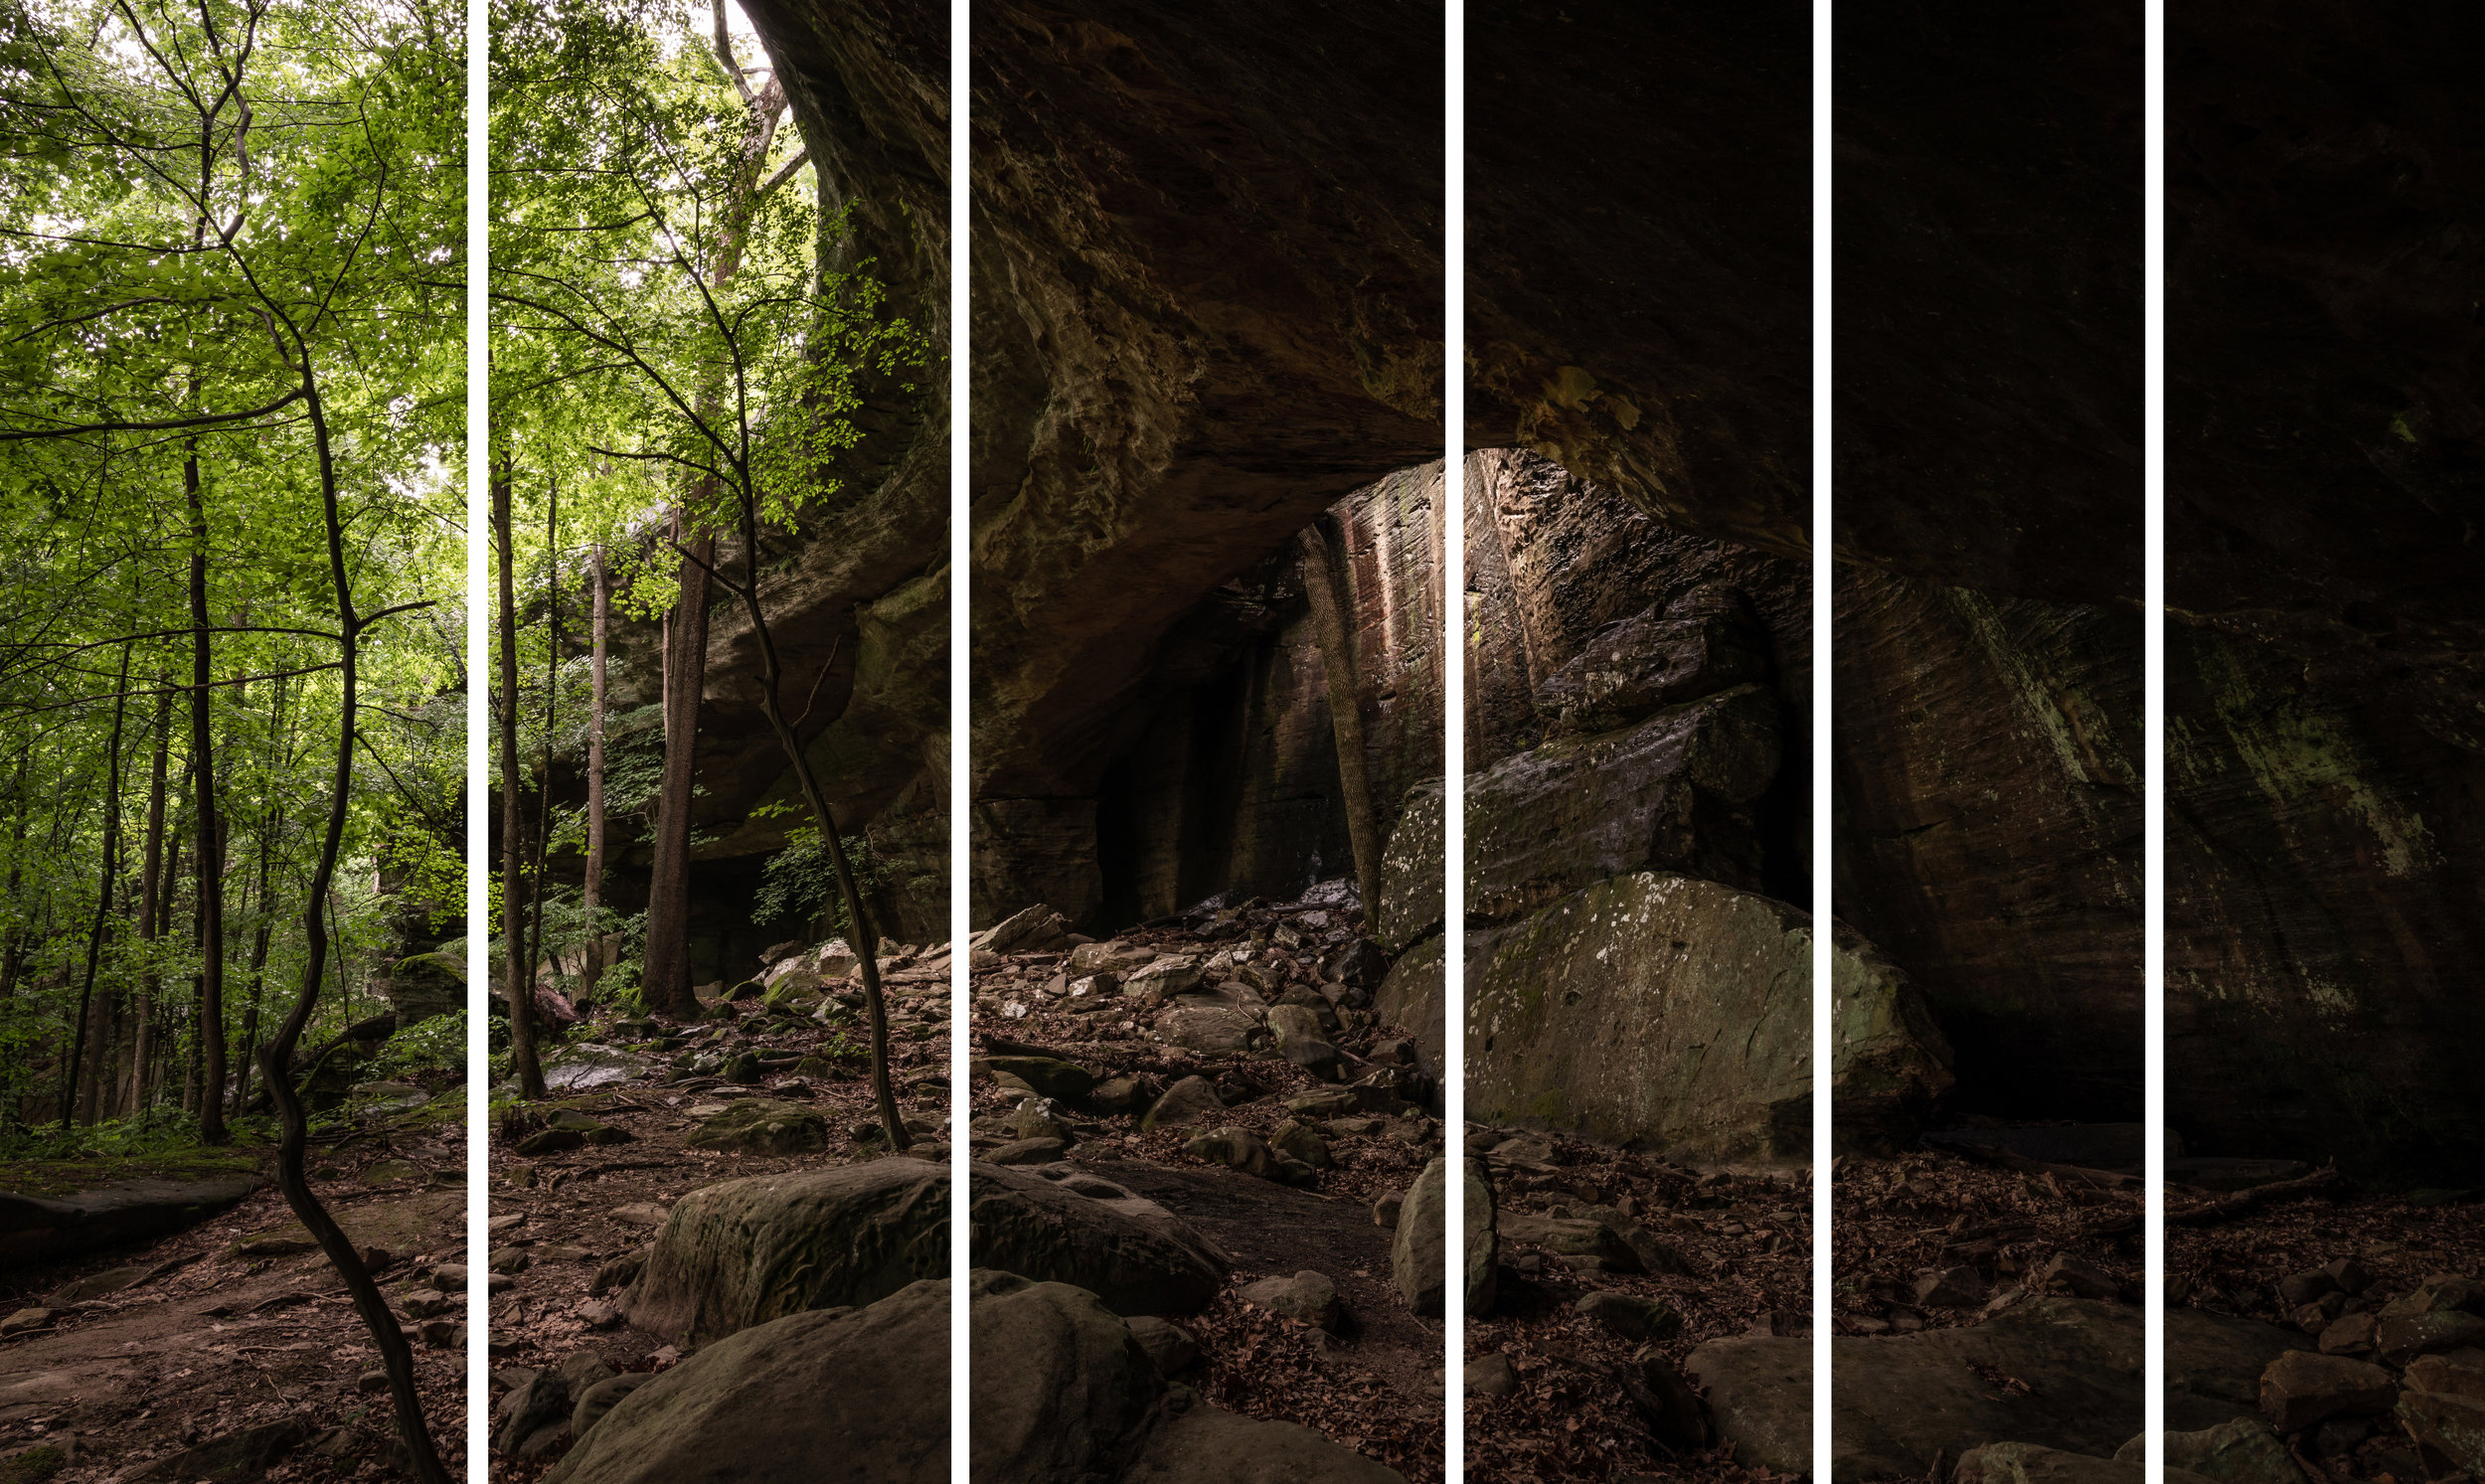 The 6 shots of the panorama. Notice how the frames to the right are narrower where there was more overlap between shots.